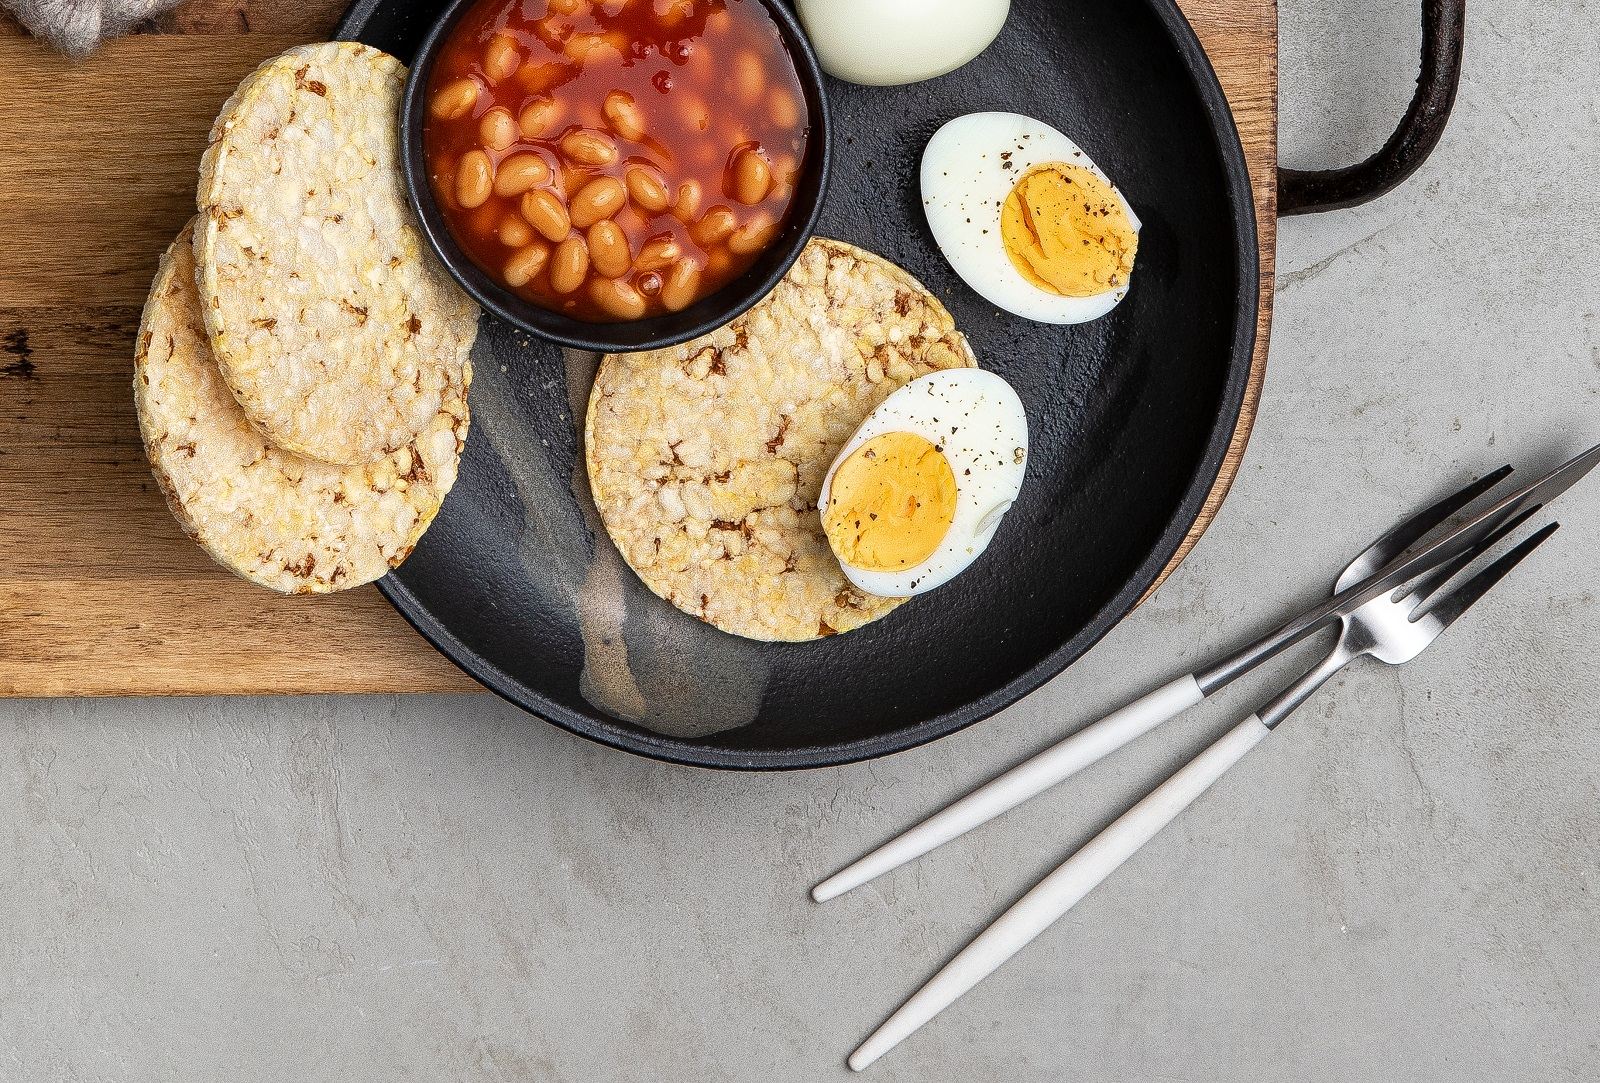 CORN THINS Slices with Beans & Egg for breakfast